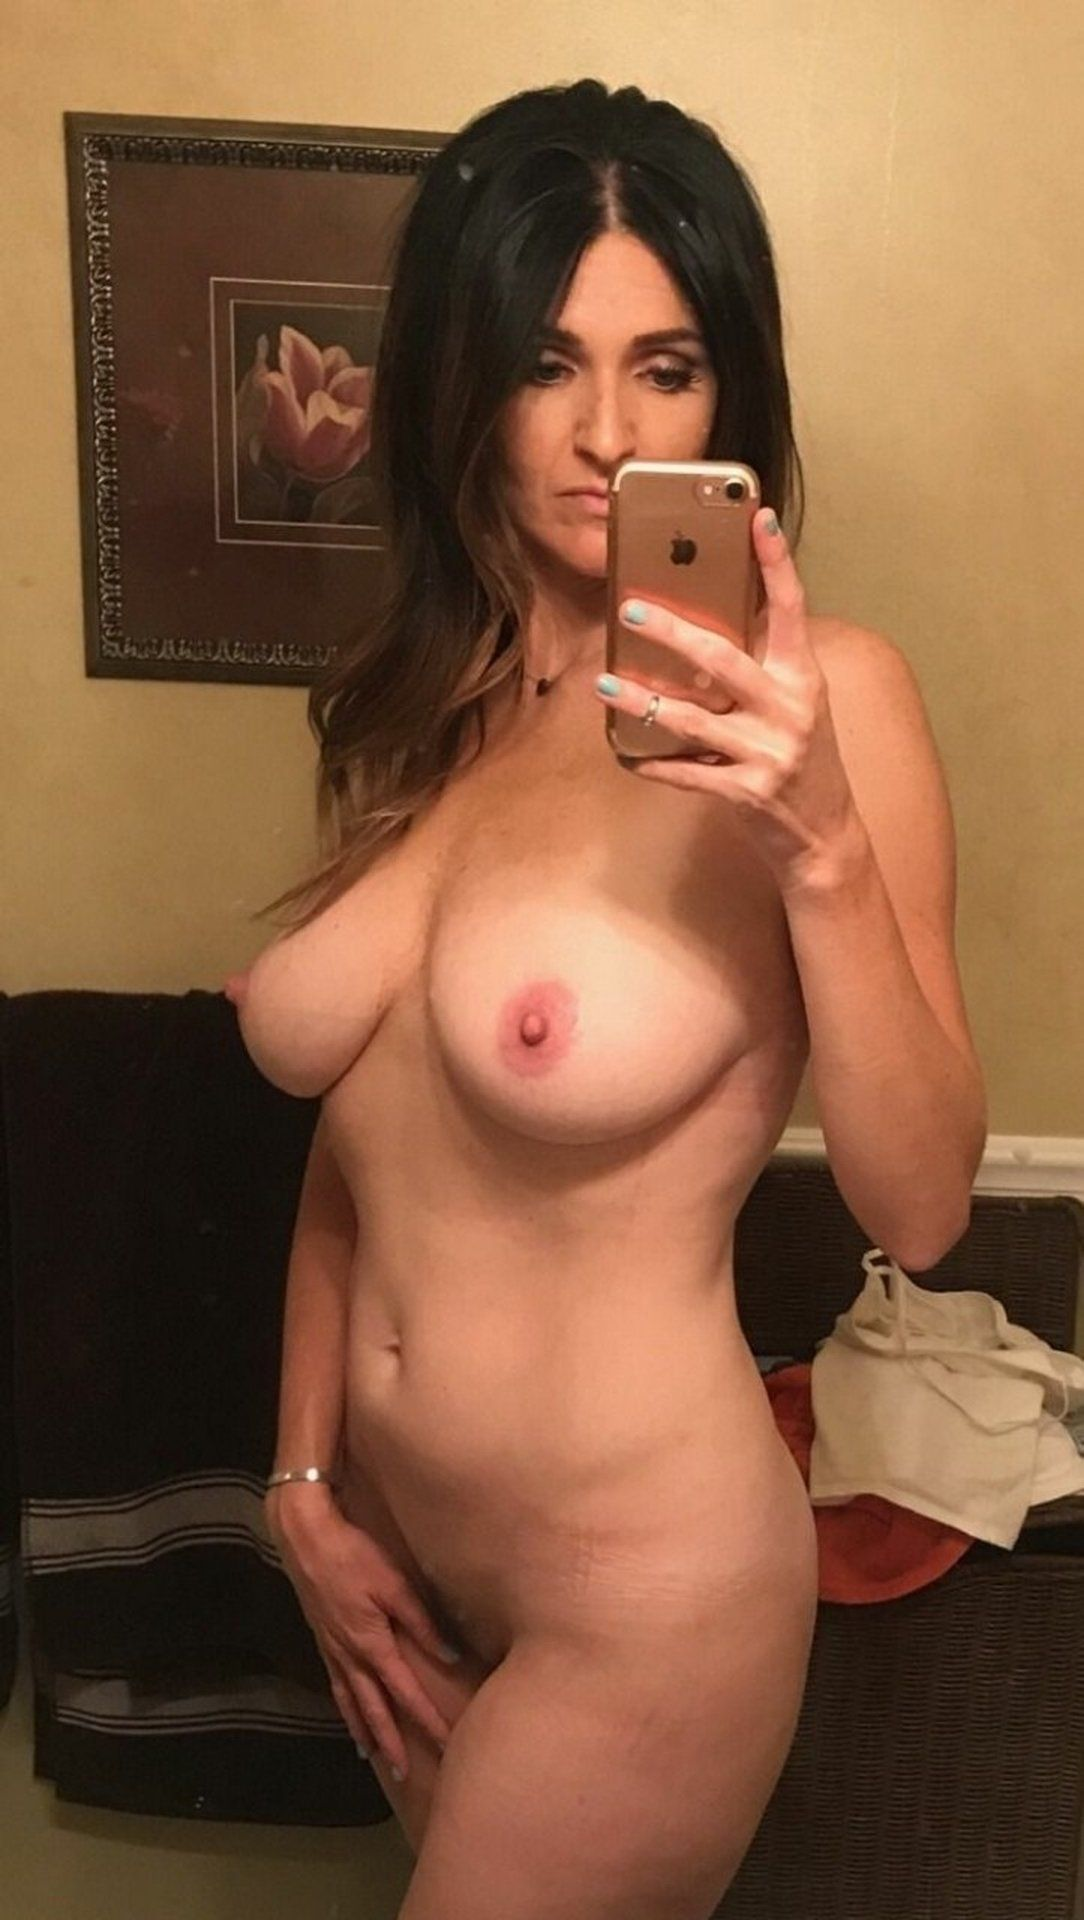 Sexy cougar undressing in front of the mirror and making naked selfie. Perfect MILF removes her bra and panties for nude self shot